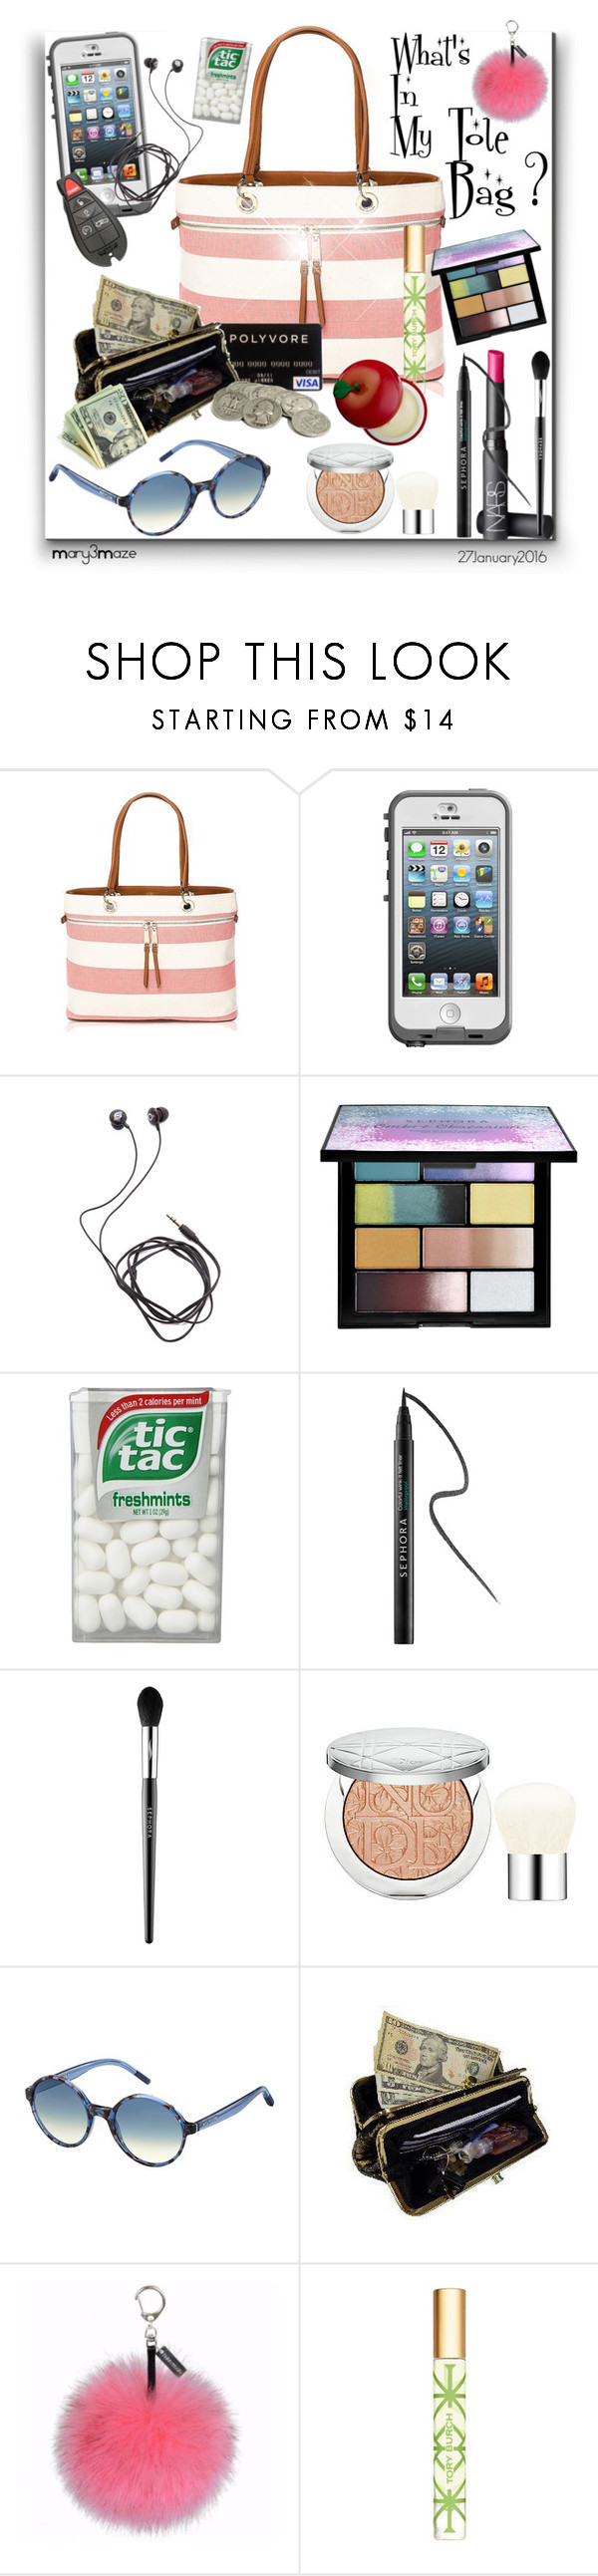 """""""Tote Bags"""" by octobermaze ❤ liked on Polyvore featuring мода, Tommy Hilfiger, LifeProof, Diane Von Furstenberg, Sephora Collection, NARS Cosmetics, Christian Dior, AmeriLeather, Helen Moore и Tory Burch"""